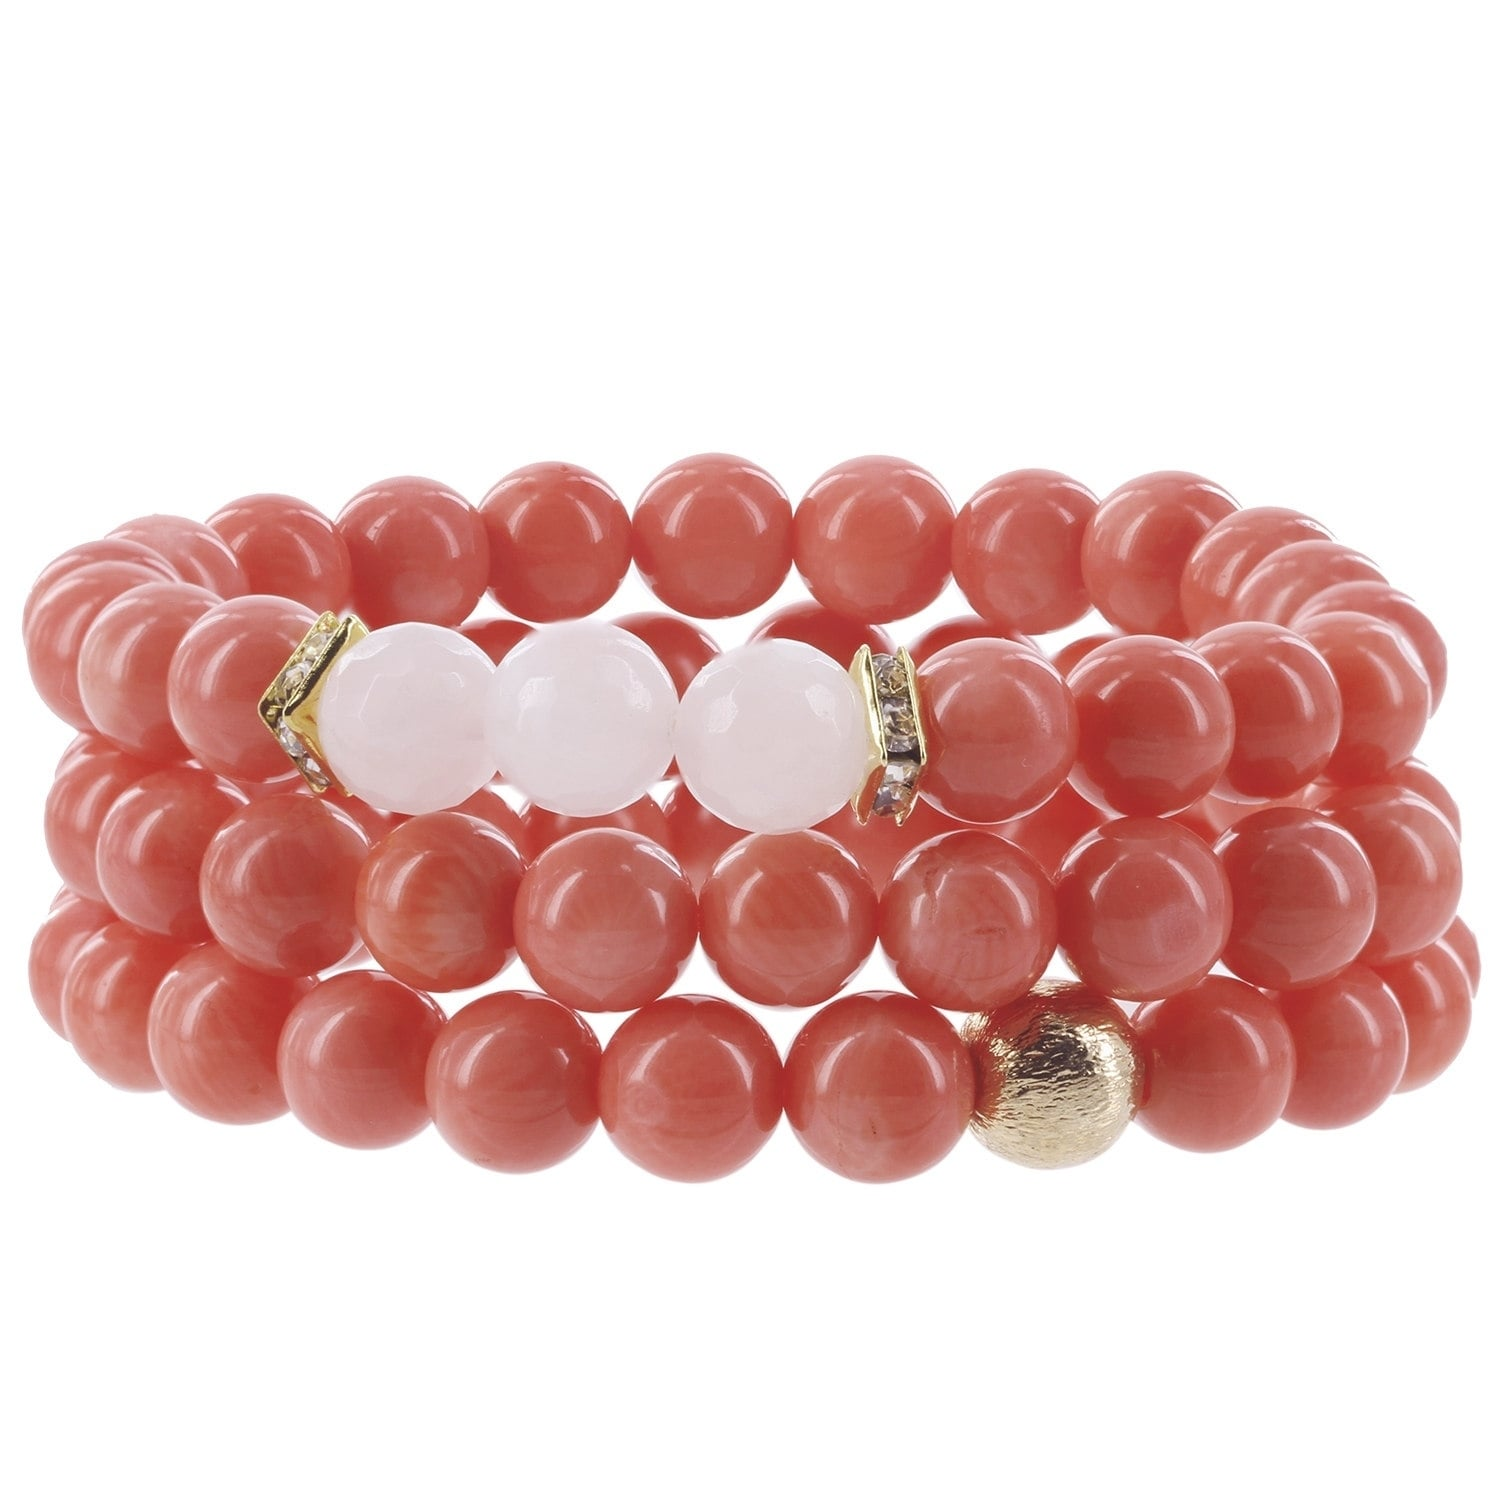 Shop Fox and Baubles Eco-friendly Coral, Rose Quartz, Brass Bead and ...